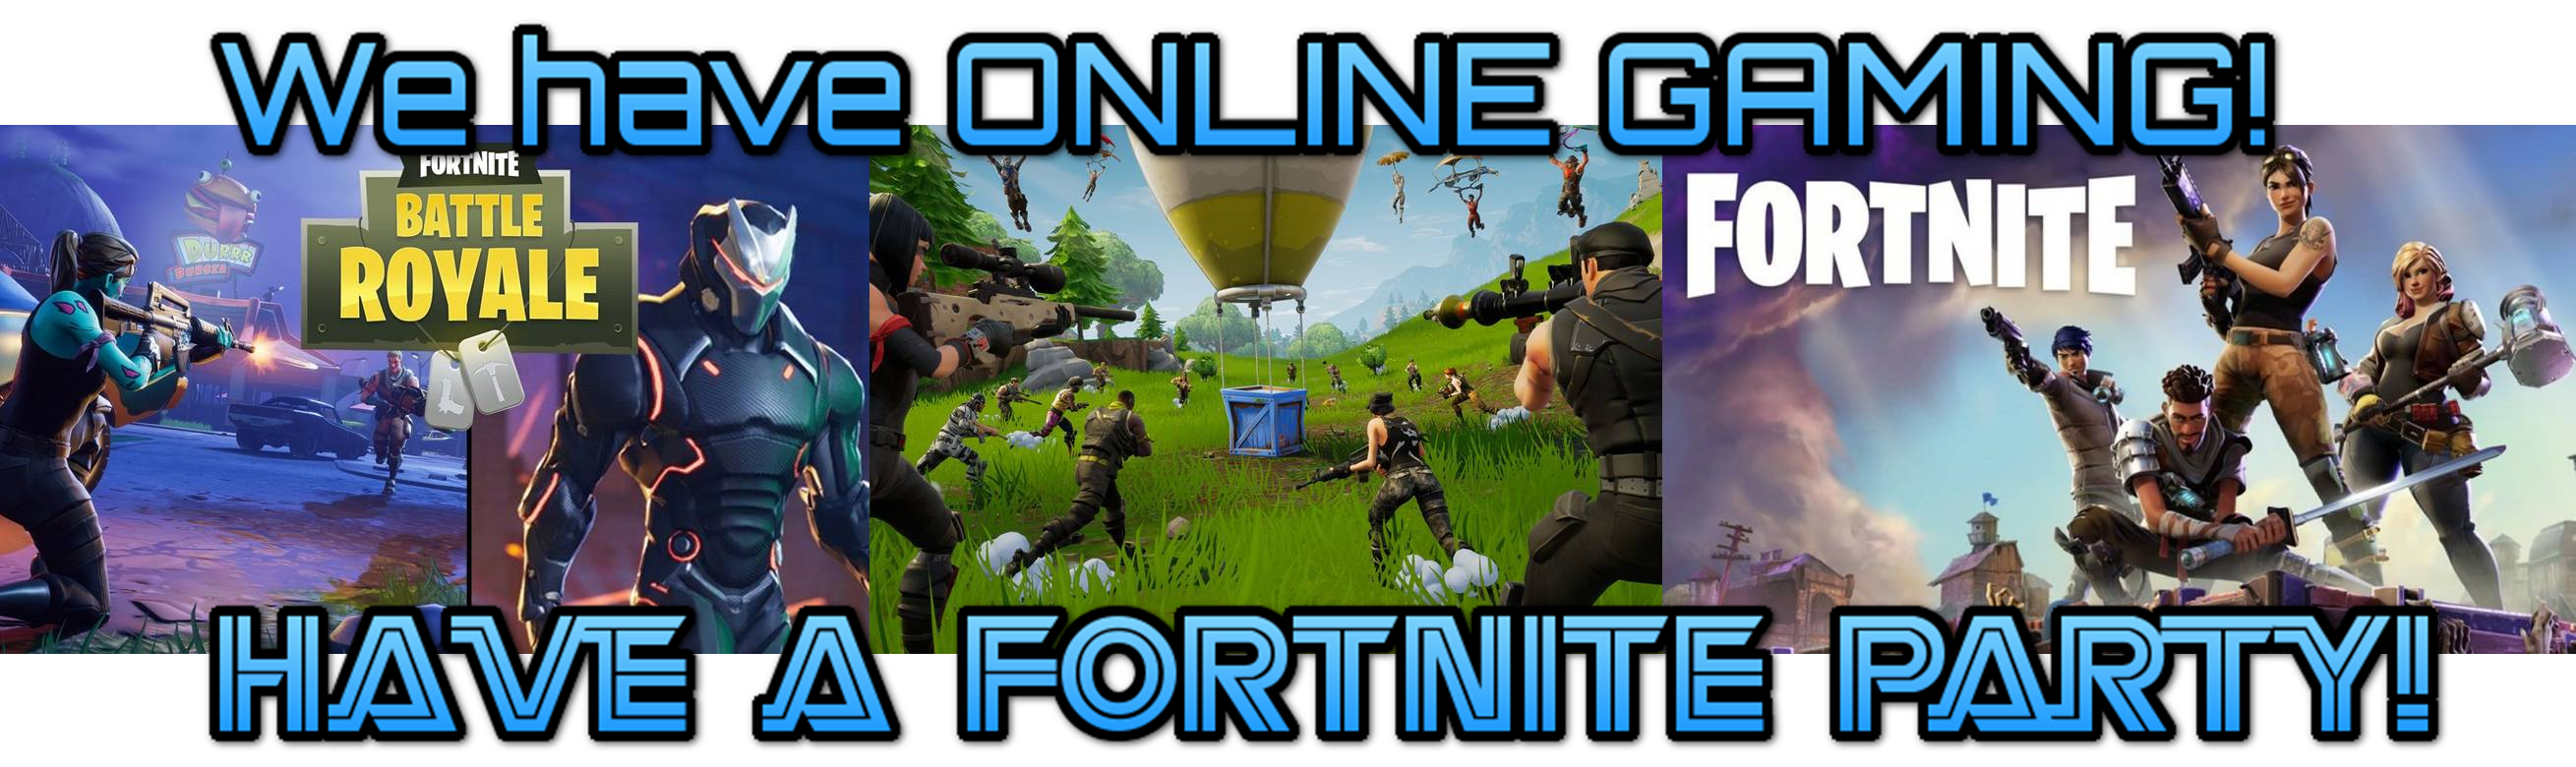 Have a Fortnite or Apex Legends online gaming birthday party in Charleston, Summerville, Mount Pleasant or Moncks Corner, SC